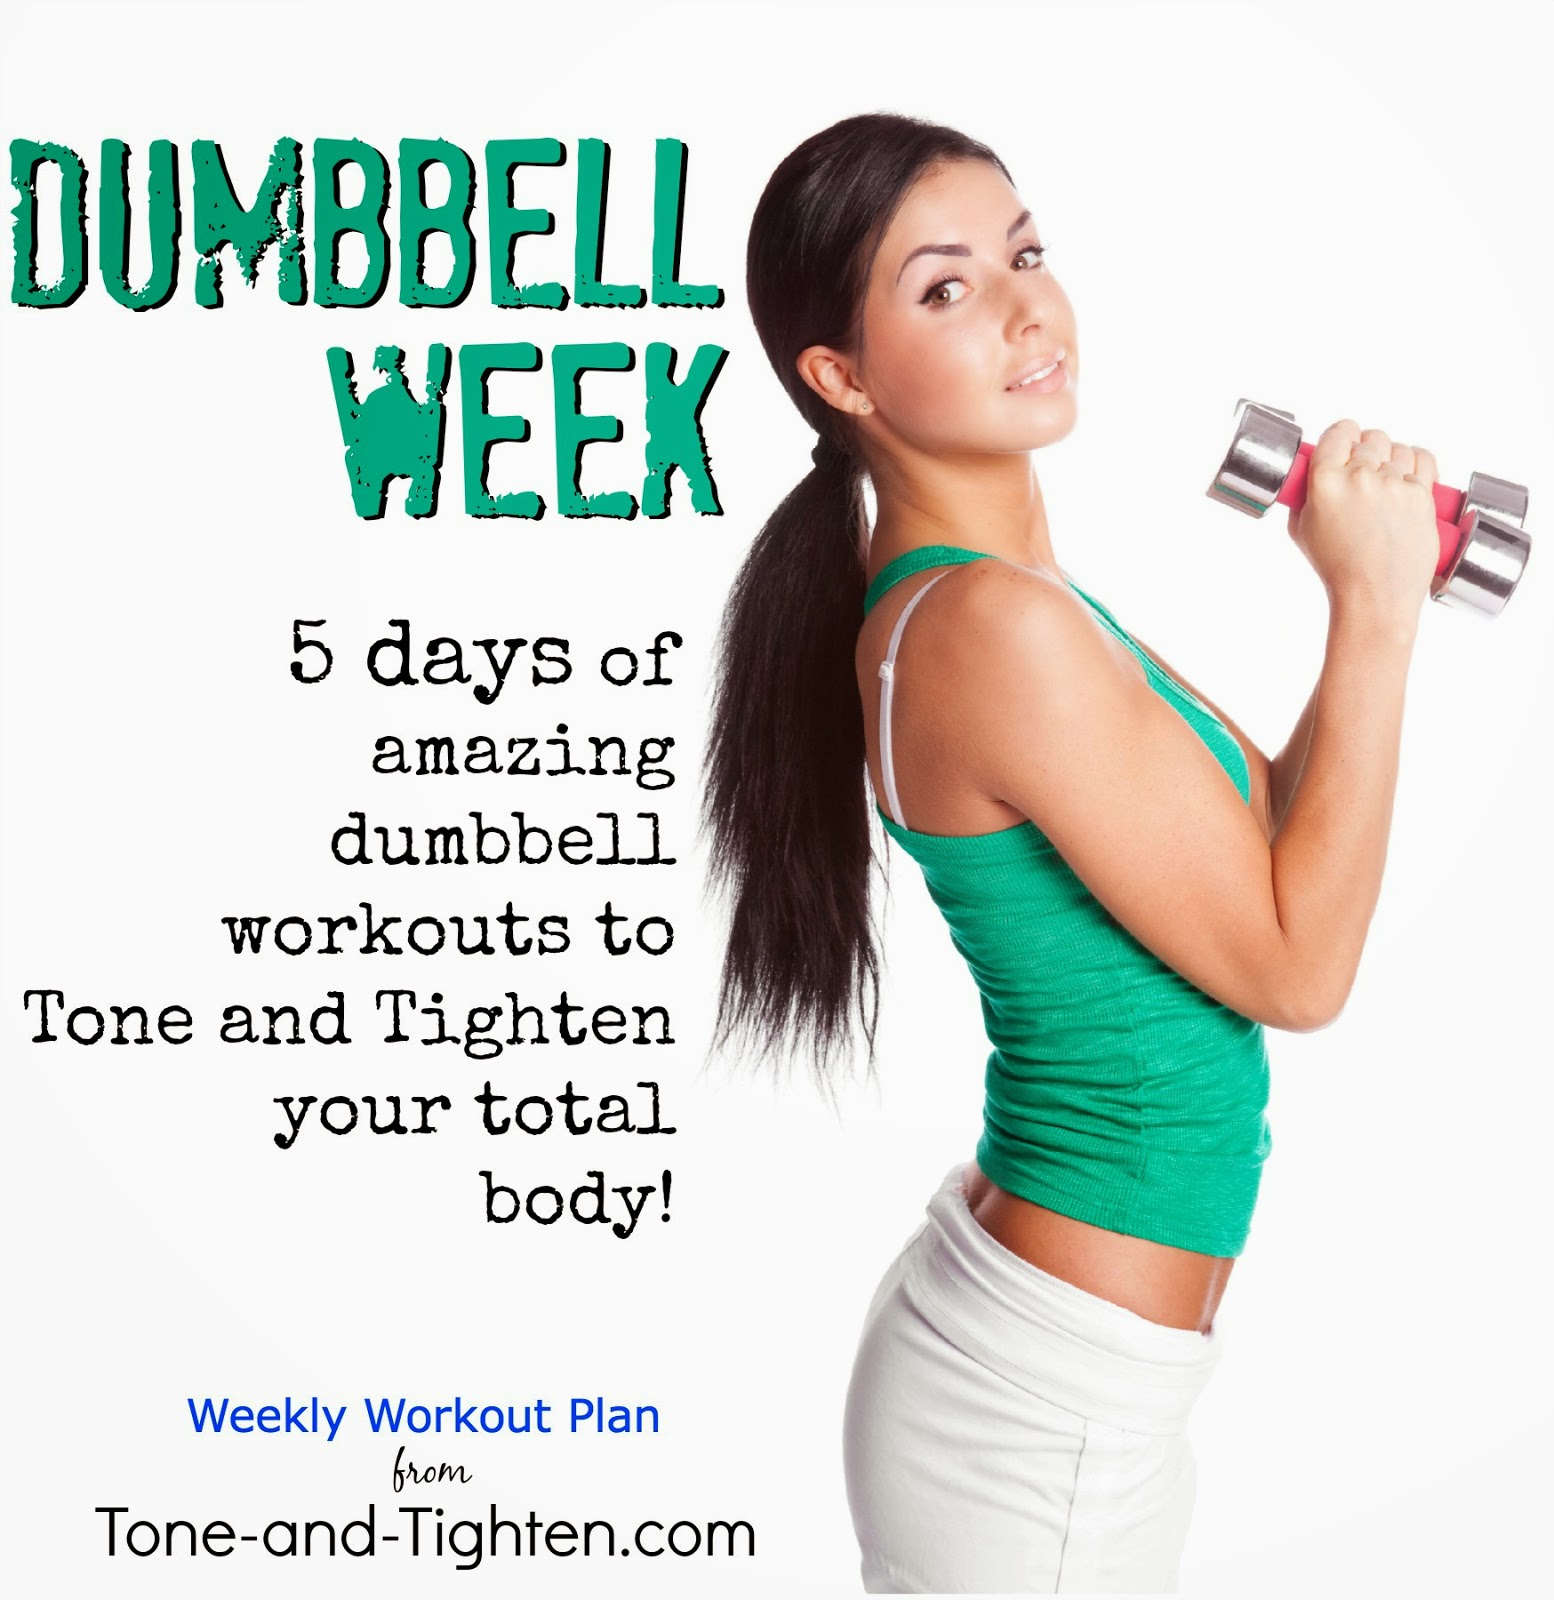 Dumbbell Exercises Chart Shoulders And Arms